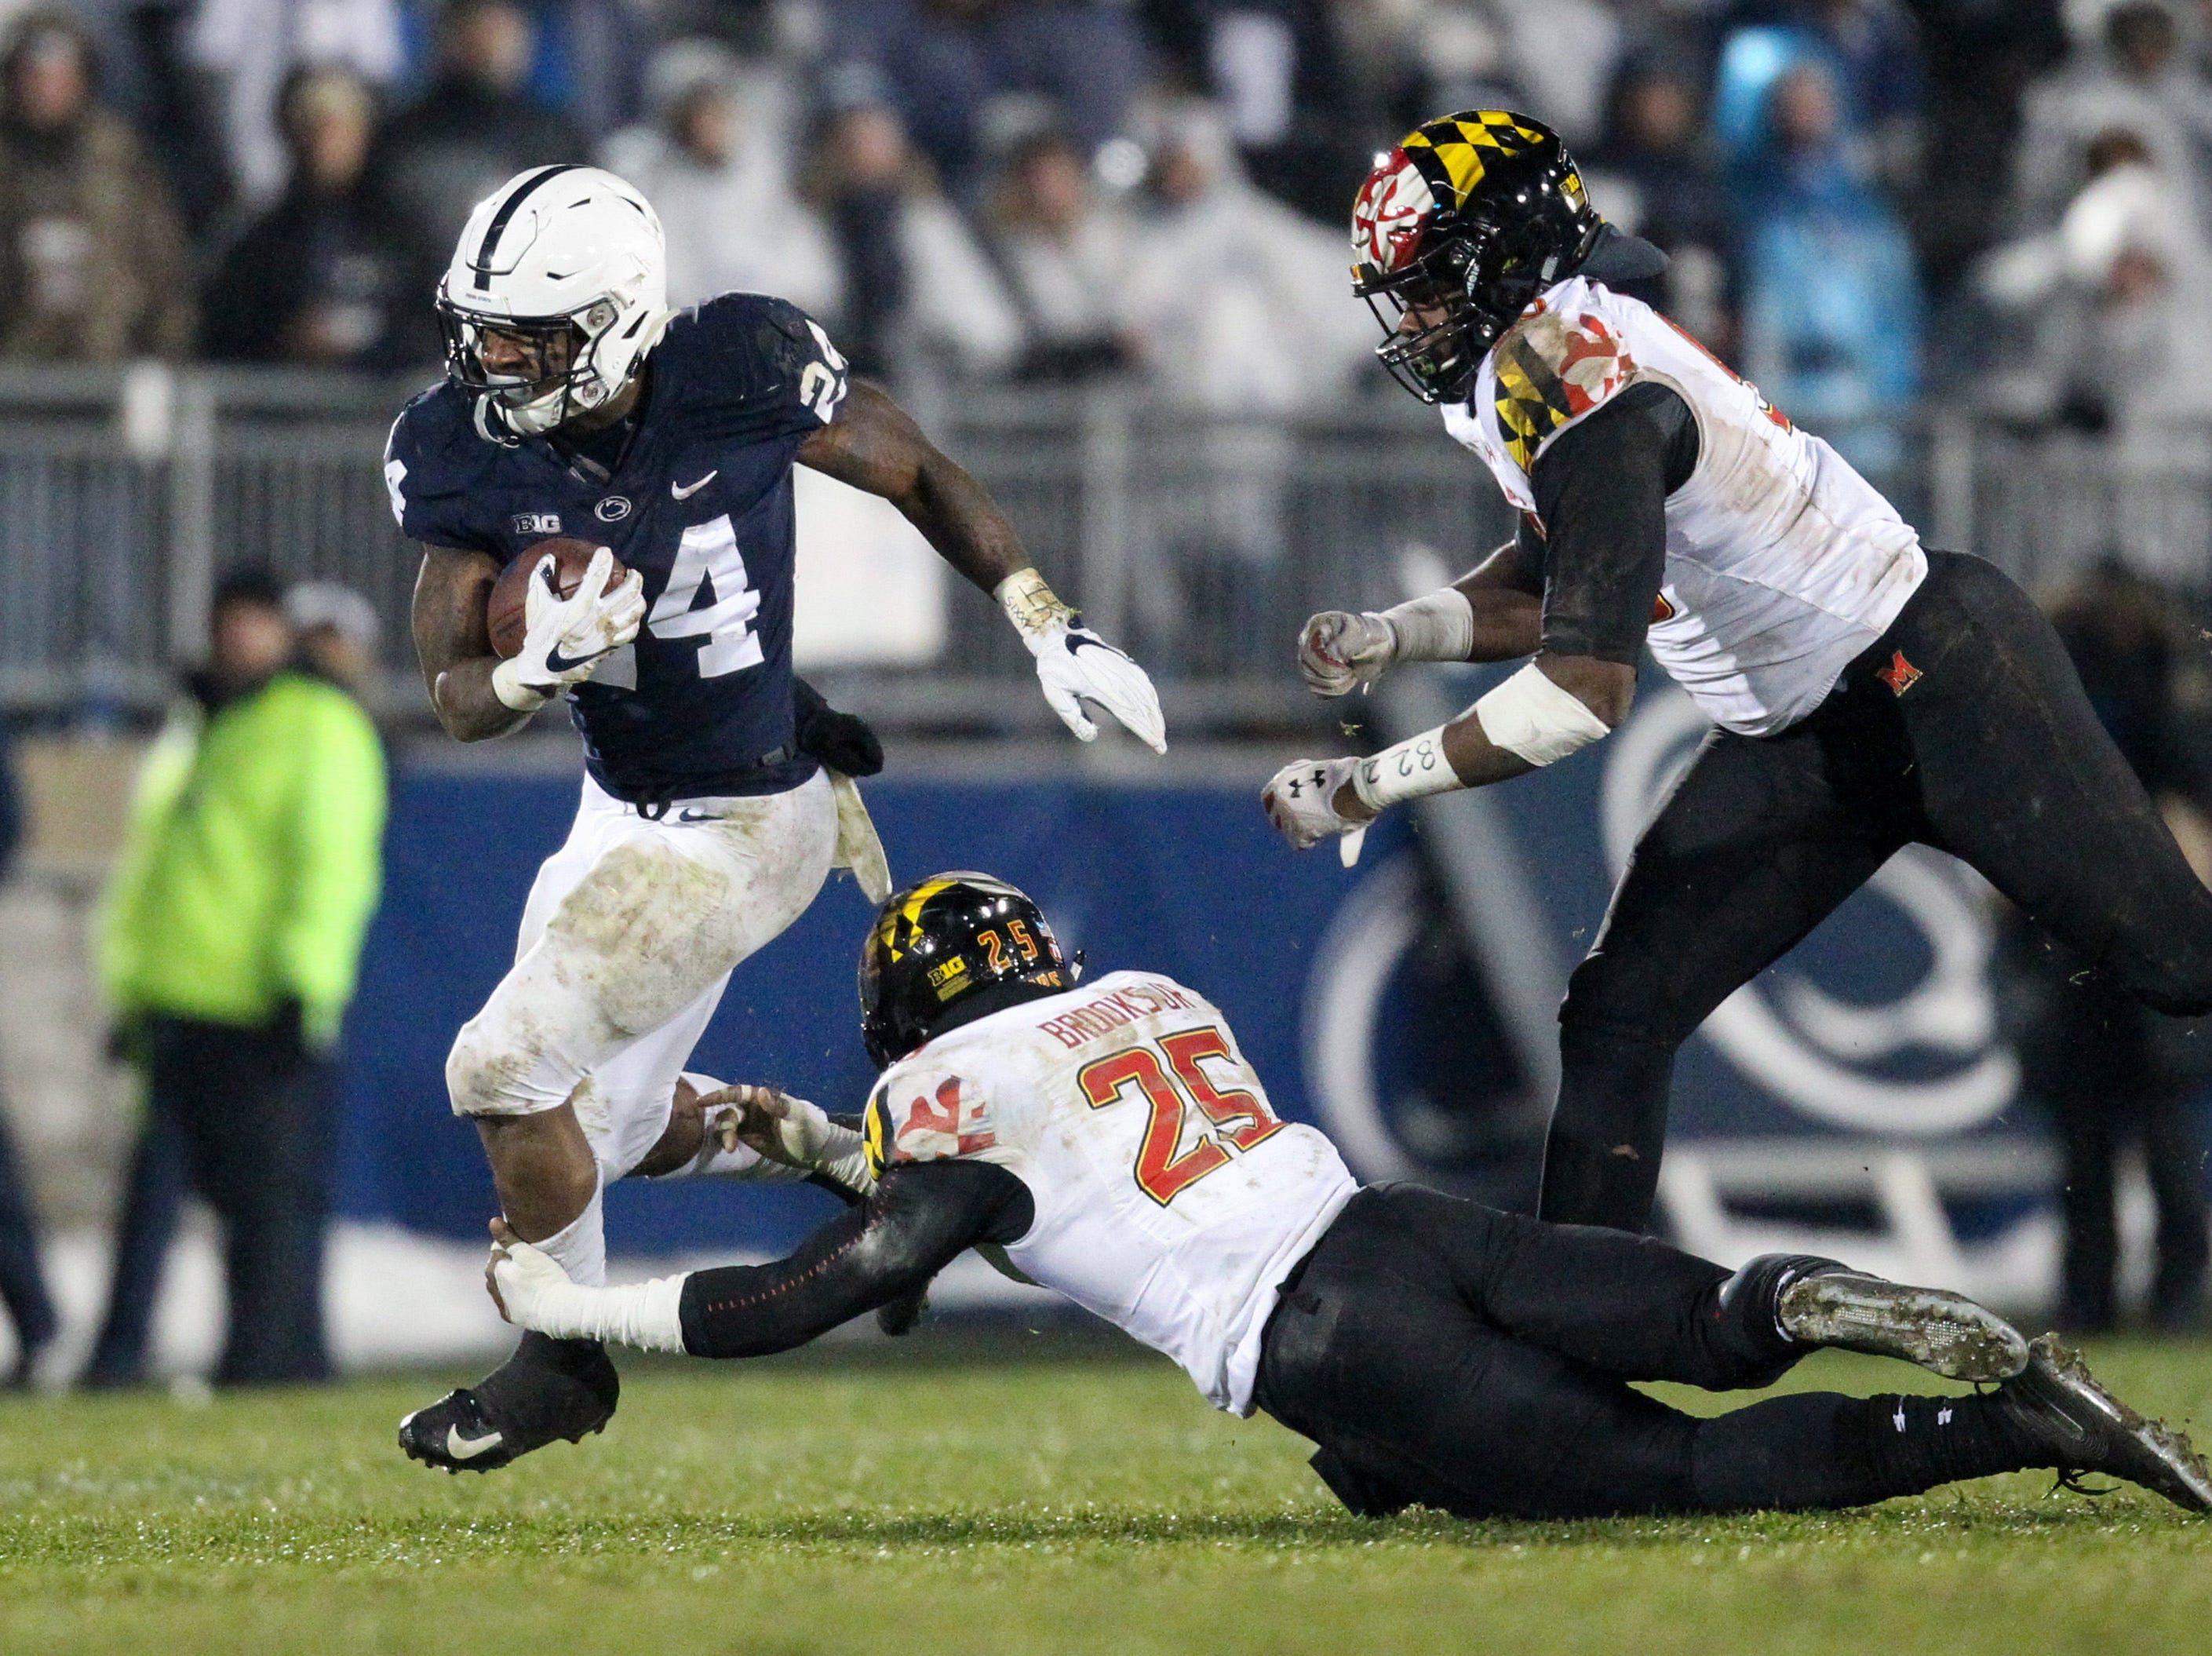 Nov 24, 2018; University Park, PA, USA; Penn State Nittany Lions running back Miles Sanders (24) runs with the ball while avoiding a tackle from Maryland Terrapins defensive back Antoine Brooks Jr (25) during the third quarter at Beaver Stadium. Penn State defeated Maryland 38-3. Mandatory Credit: Matthew O'Haren-USA TODAY Sports